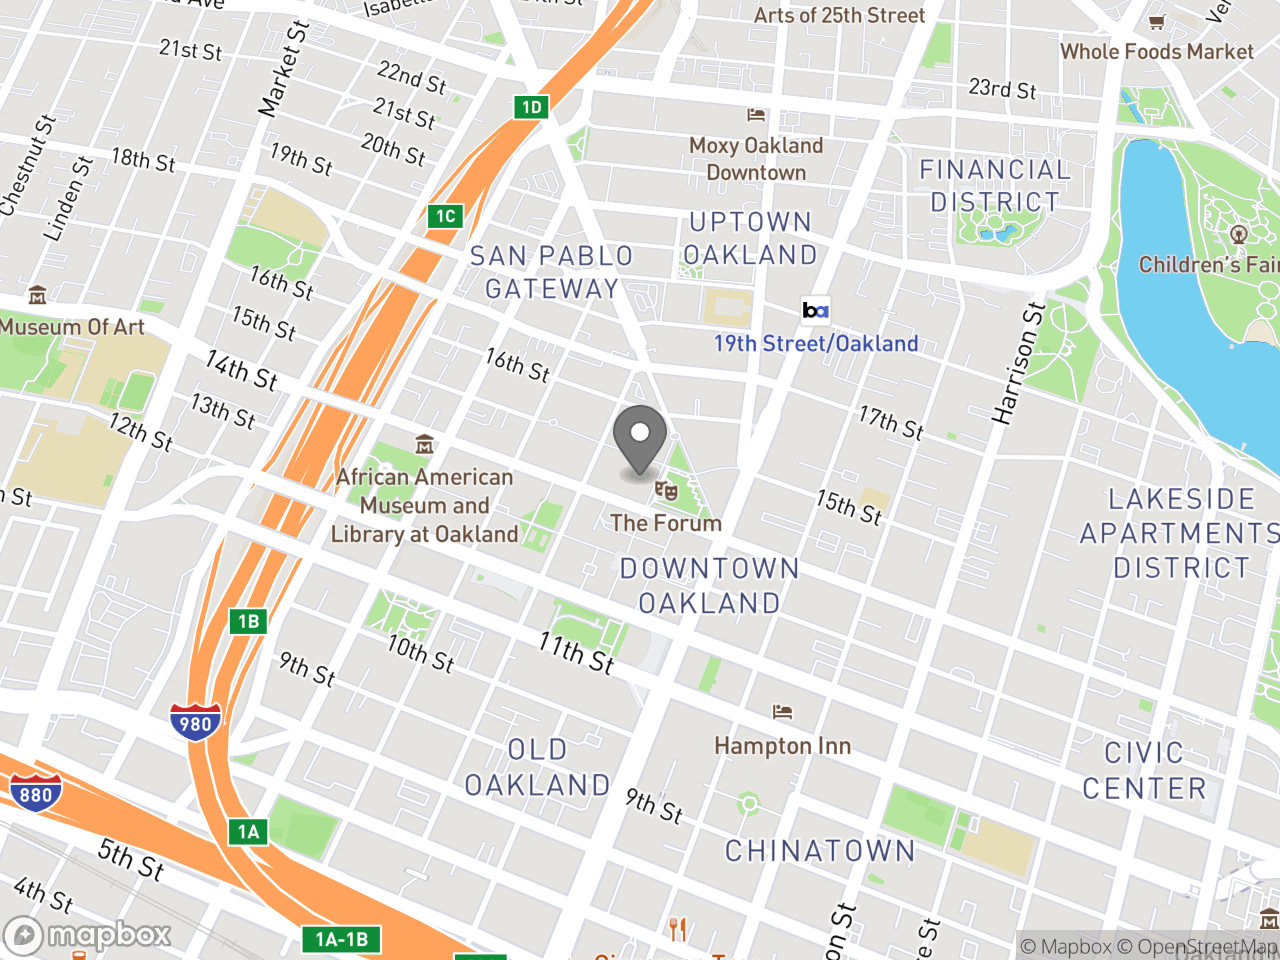 Map image for Police Commission Special Meeting January 9, 2020, located at 1 Frank H. Ogawa Plaza in Oakland, CA 94612